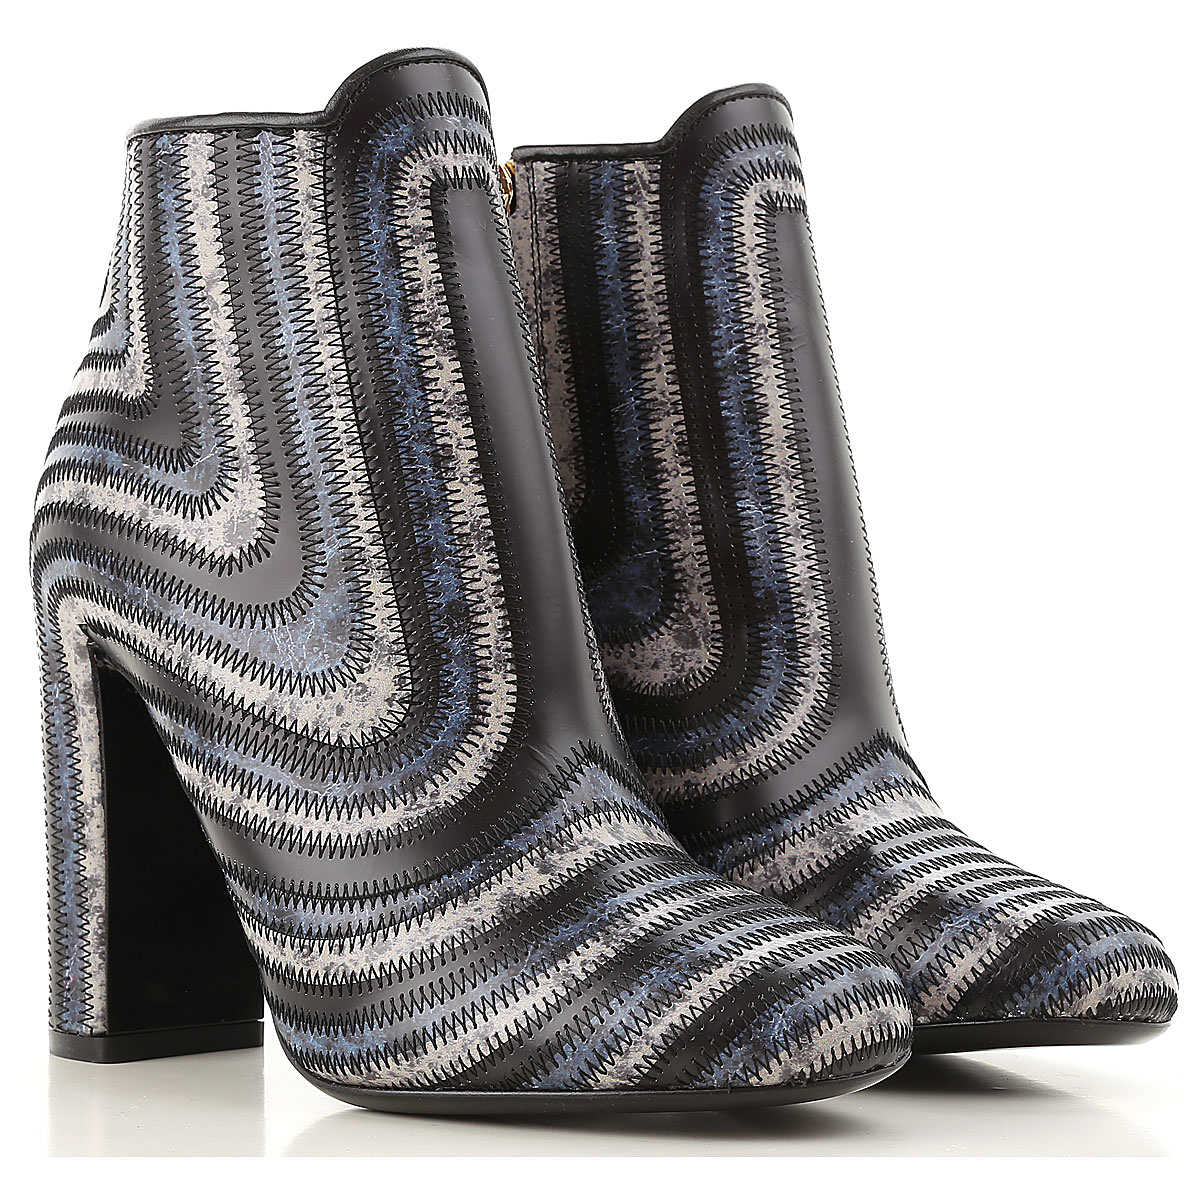 Salvatore Ferragamo Boots for Women Booties On Sale in Outlet DK - GOOFASH - Womens BOOTS